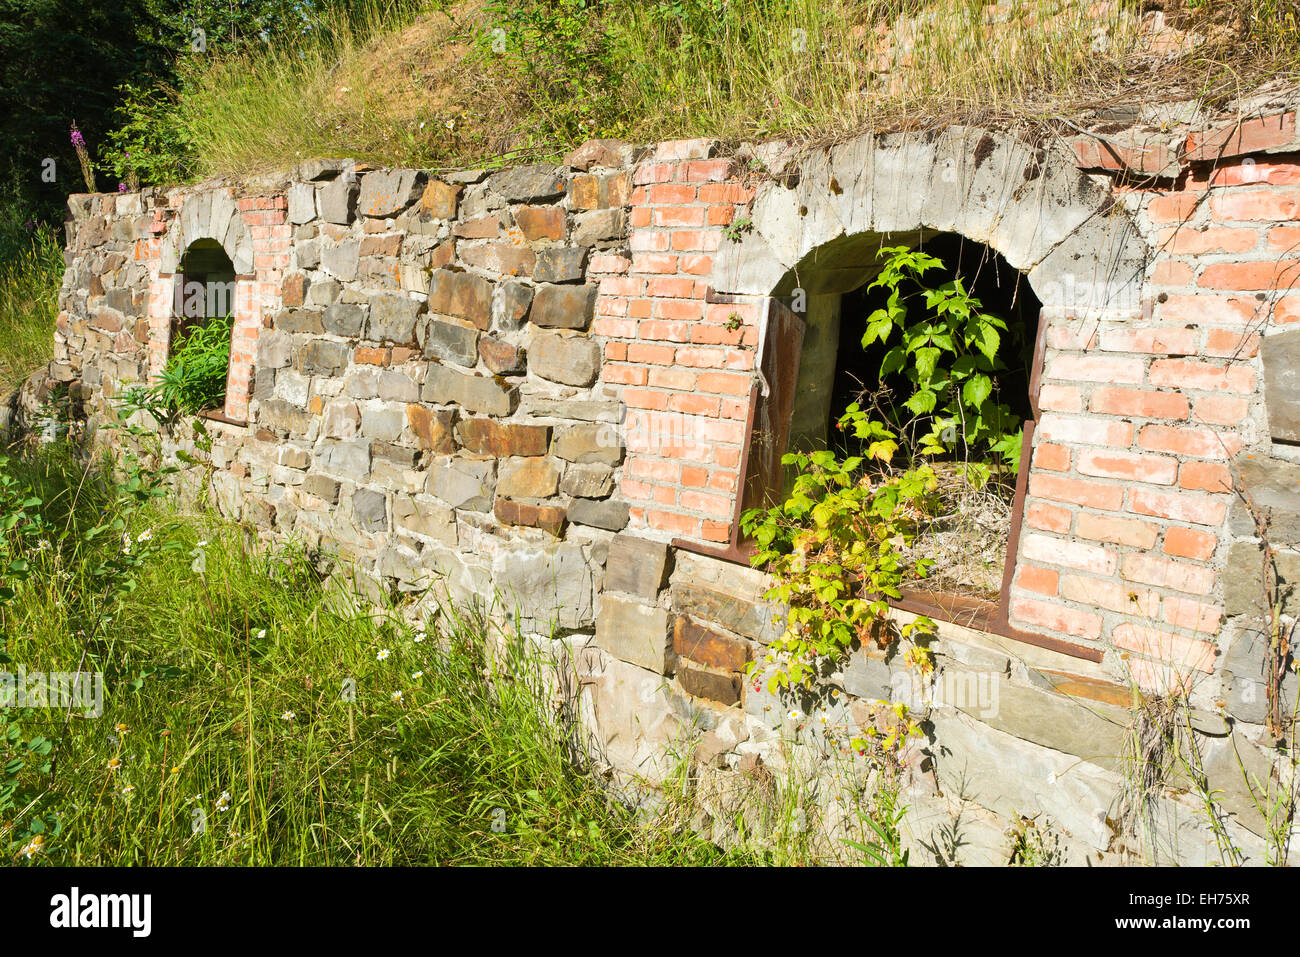 Derelict coke ovens near Fernie, BC, Canada.  Primitive ovens are a historic remnant of the Crow's Nest Pass - Stock Image